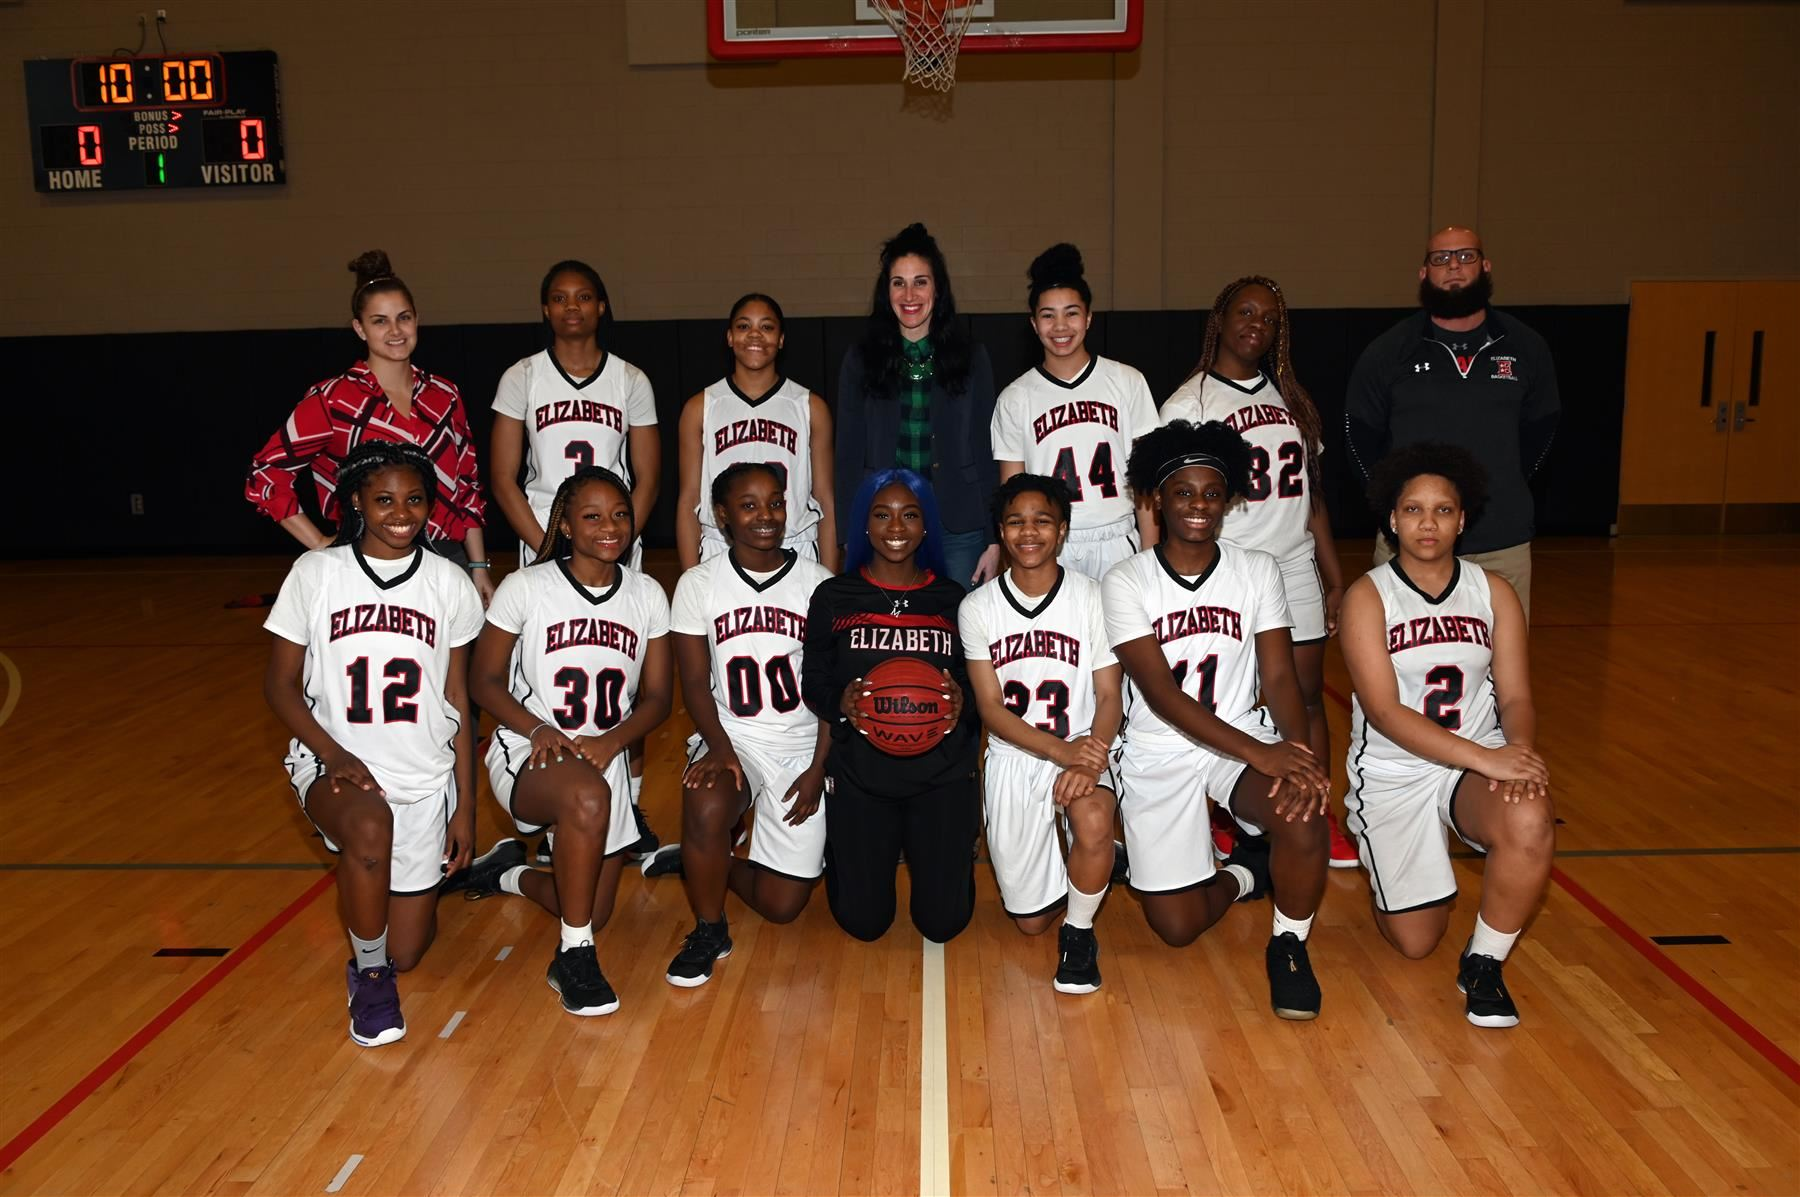 Girls Varsity Basketball Team Vs. Plainfield High School 2/4/2020